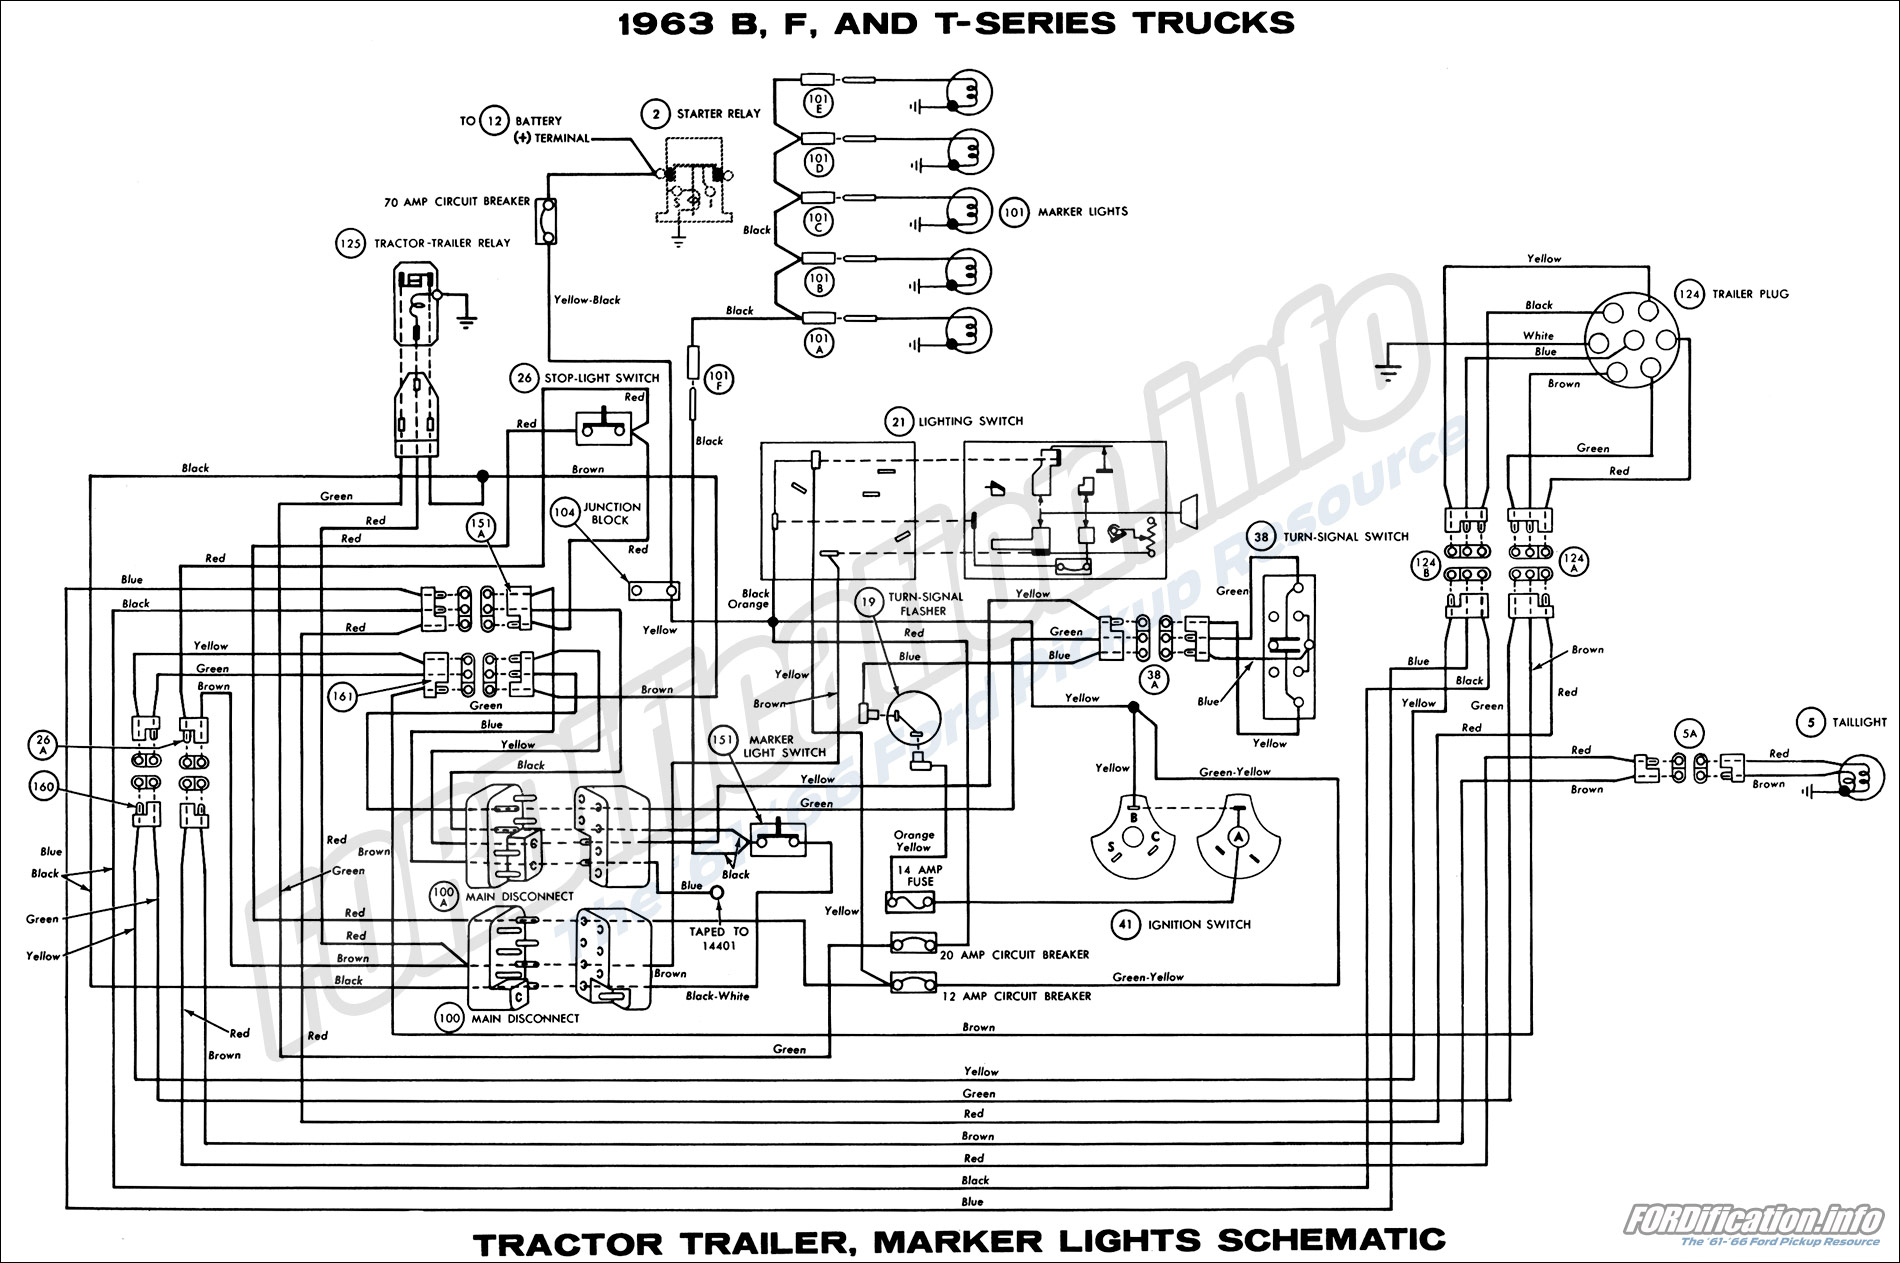 Interior Lamp Wiring